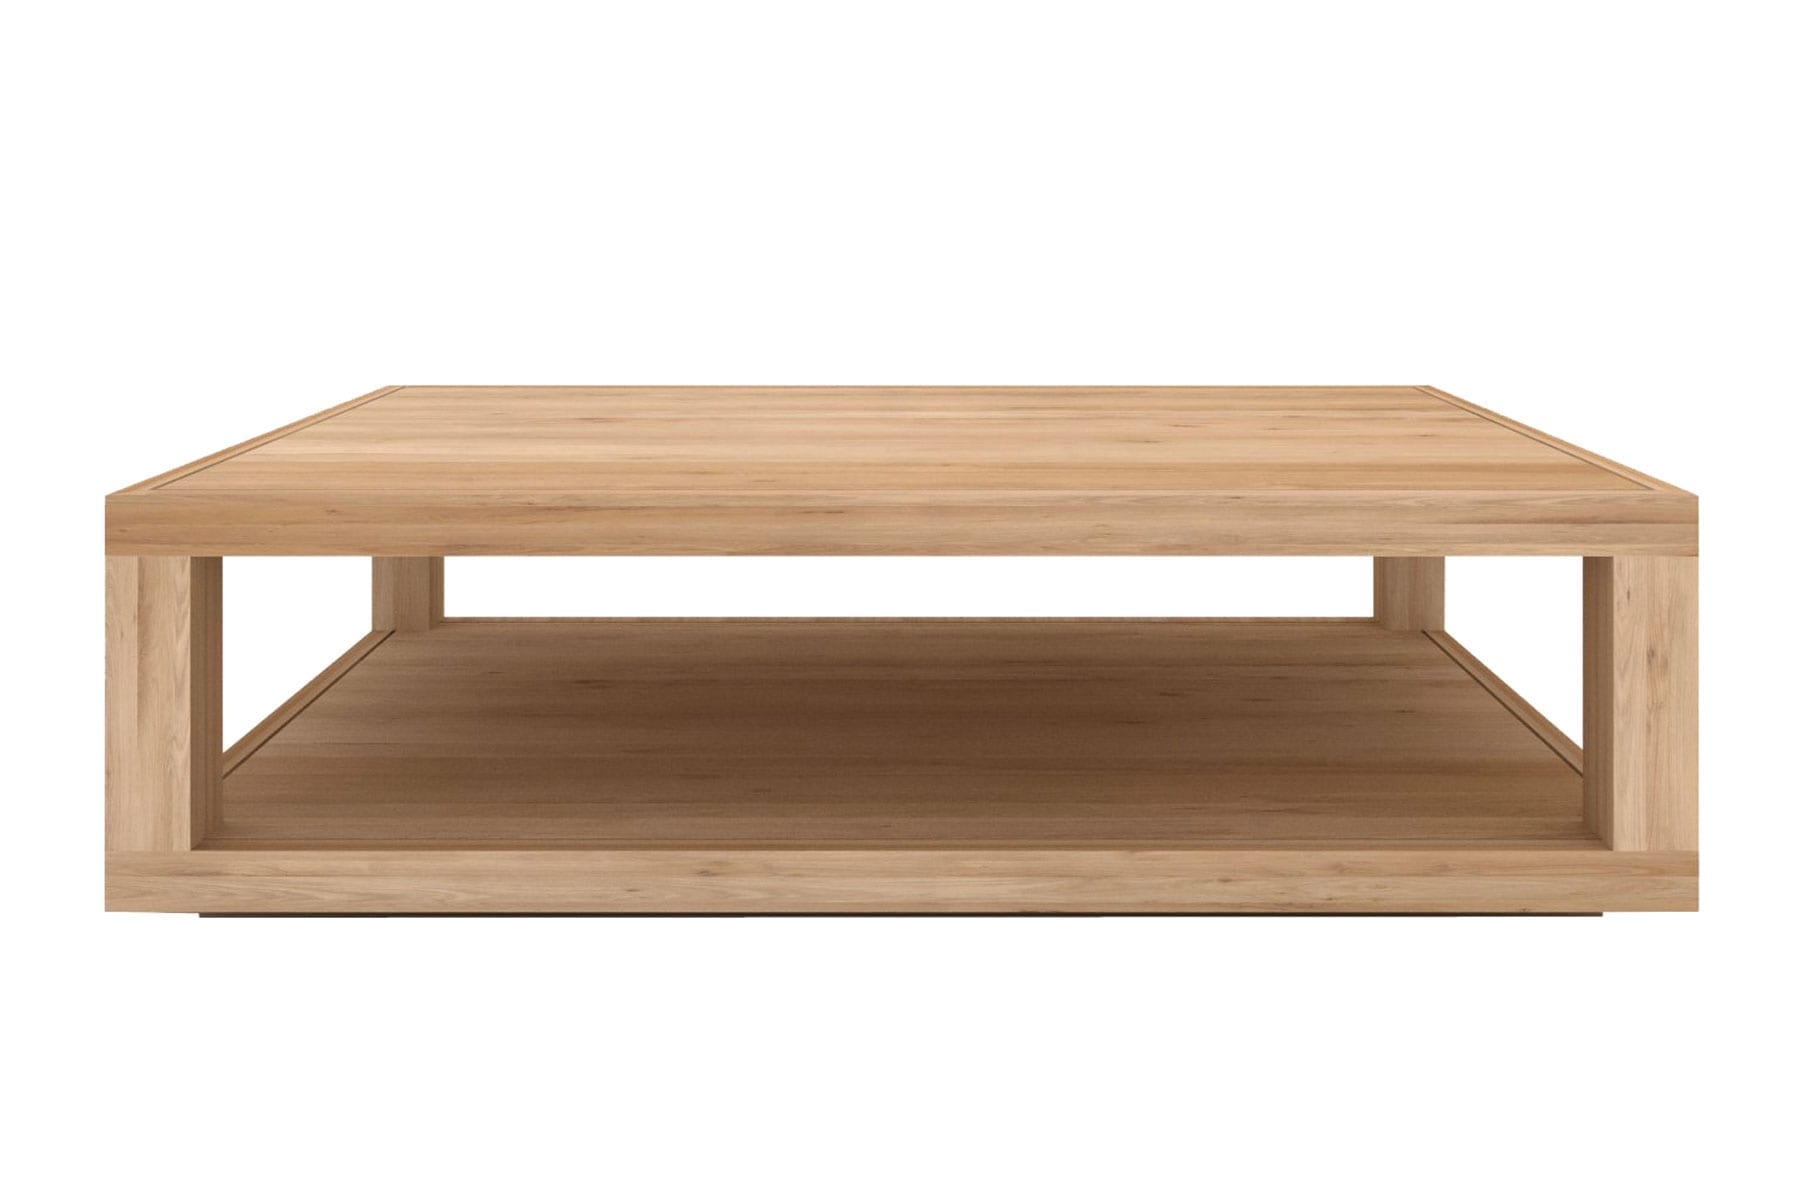 » Ethnicraft Duplex Coffee Table McKenzie & Willis -> Table Basse Bois Flotté Vitrée